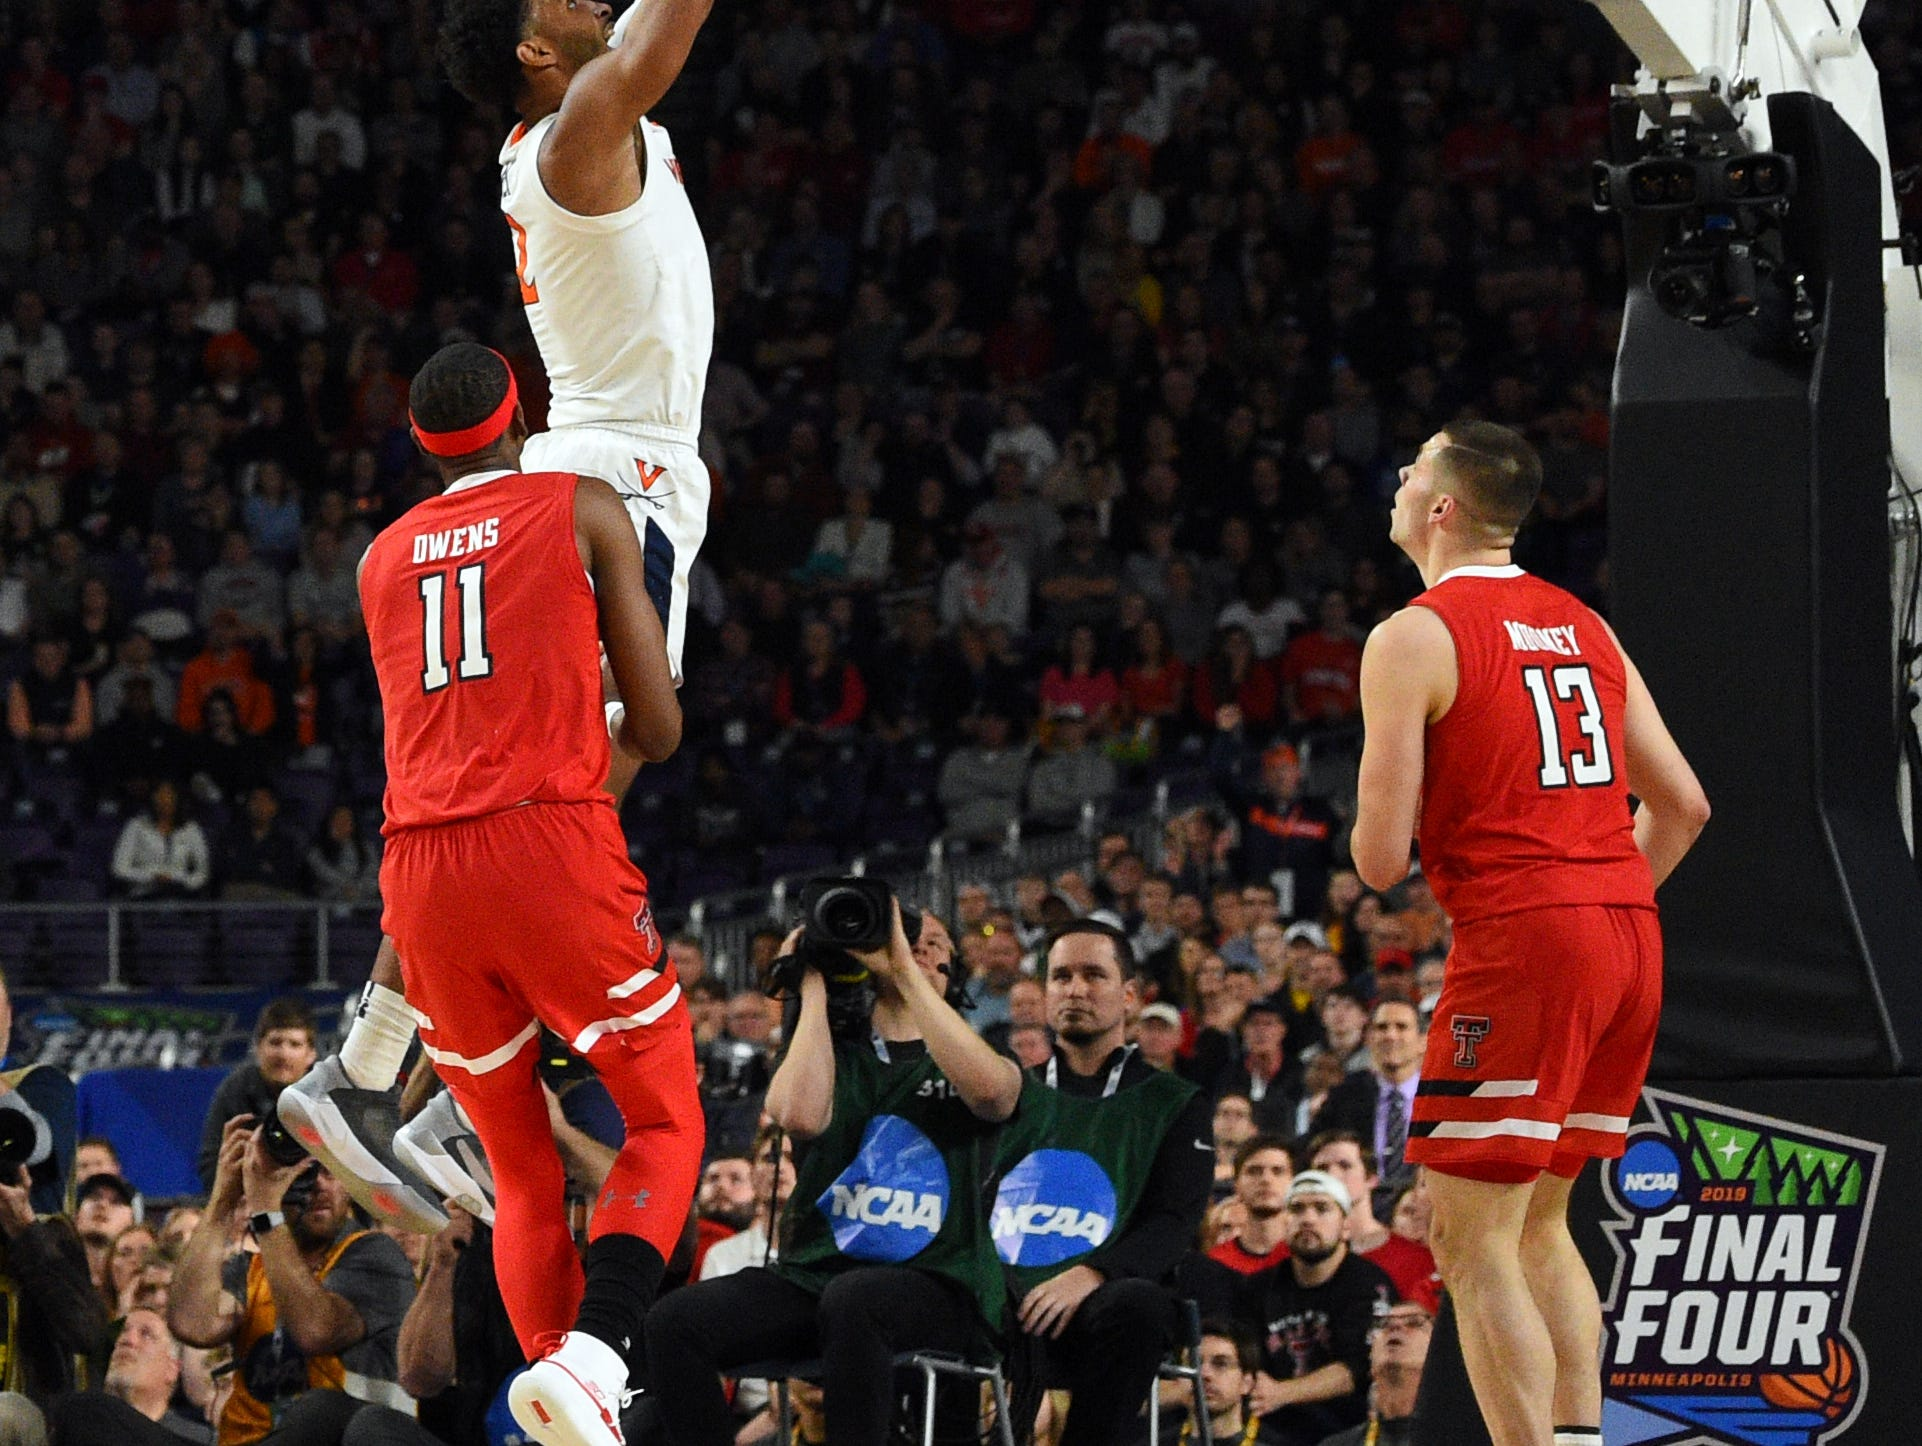 Apr 8, 2019; Minneapolis, MN, USA; Virginia Cavaliers guard De'Andre Hunter (in white) dunks the ball as Texas Tech Red Raiders forward Tariq Owens (11) and guard Matt Mooney (13) look on during the first half in the championship game of the 2019 men's Final Four at US Bank Stadium. Mandatory Credit: Bob Donnan-USA TODAY Sports